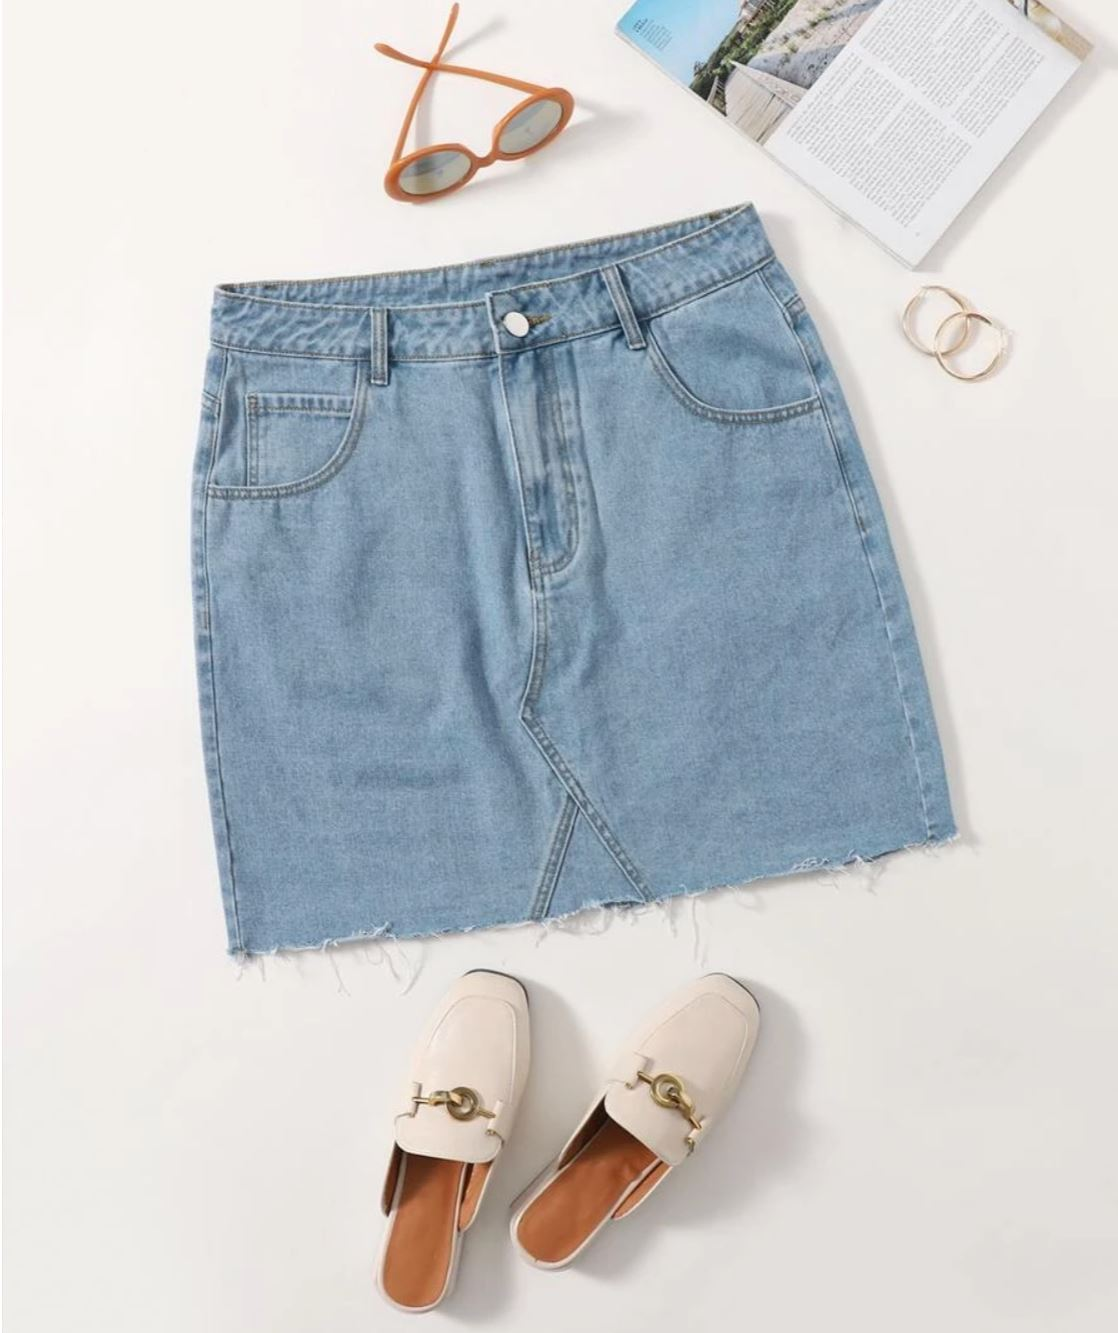 Shein denim skirt